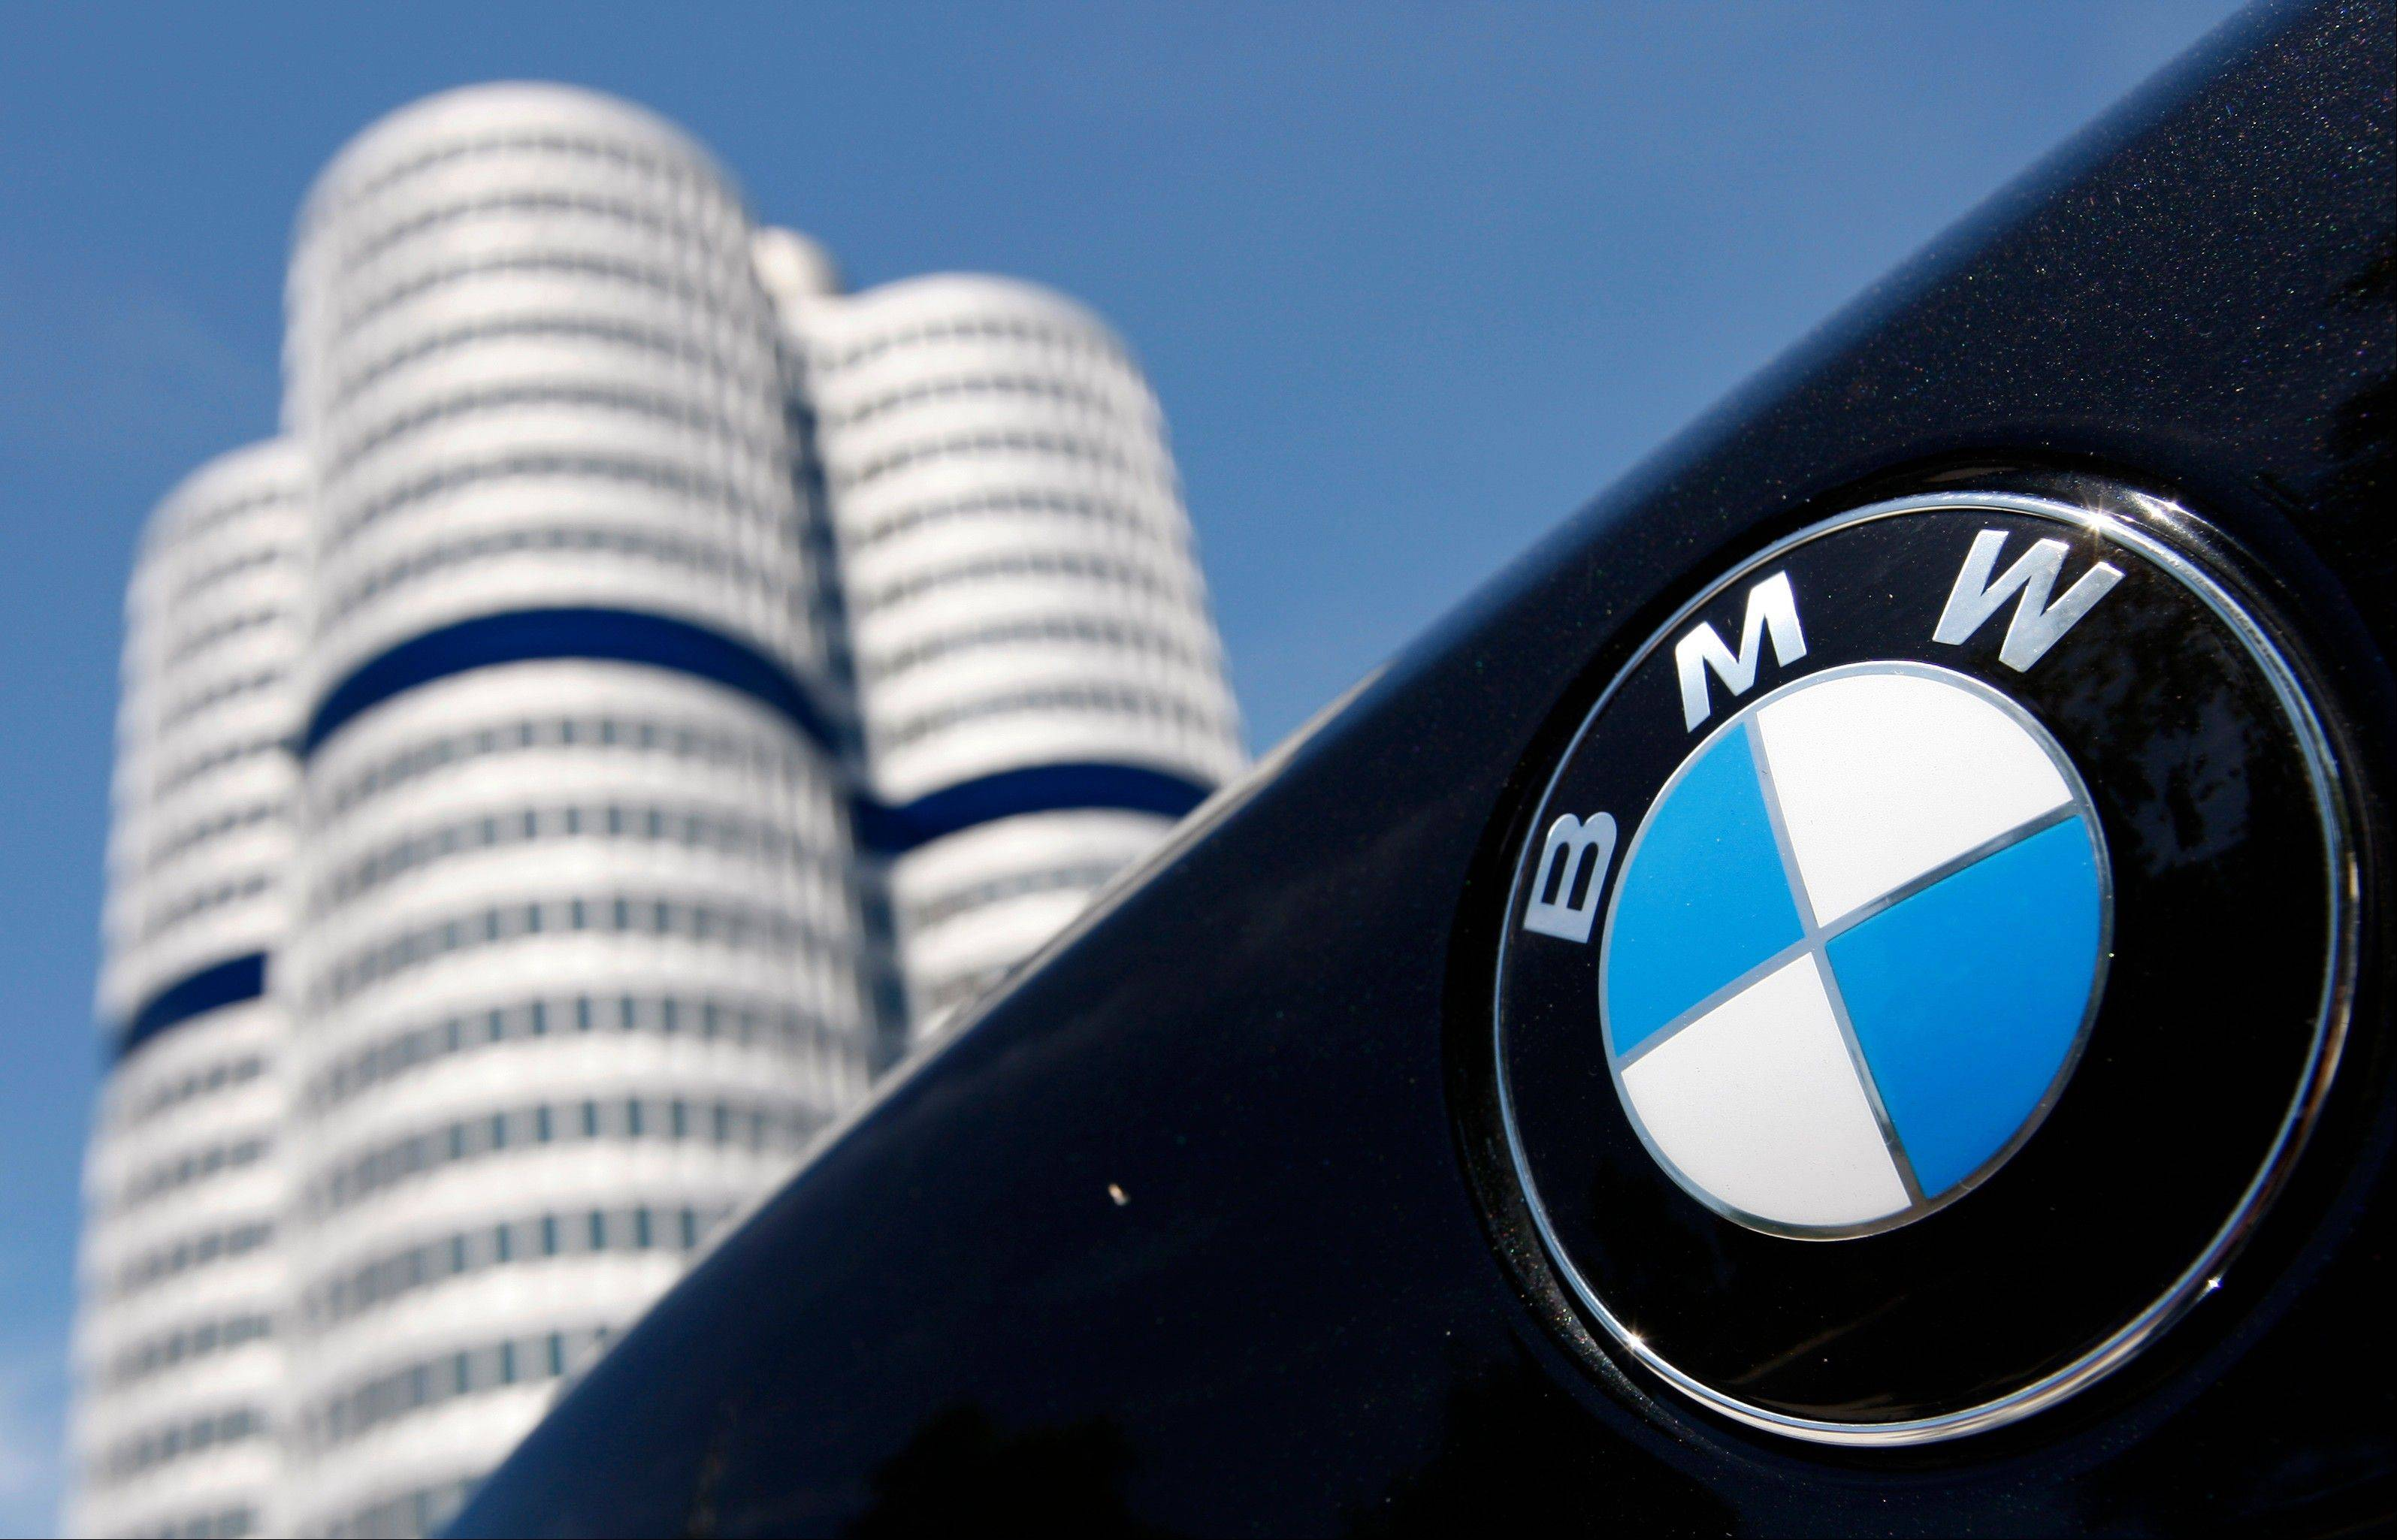 BMW will sell cars over the Web for the first time as the world�s largest maker of luxury vehicles seeks an inexpensive way to reach more buyers to recoup spending on its electric models. A major concern for the carmaker is if the experiment fails or does not immediately work as well as expected.